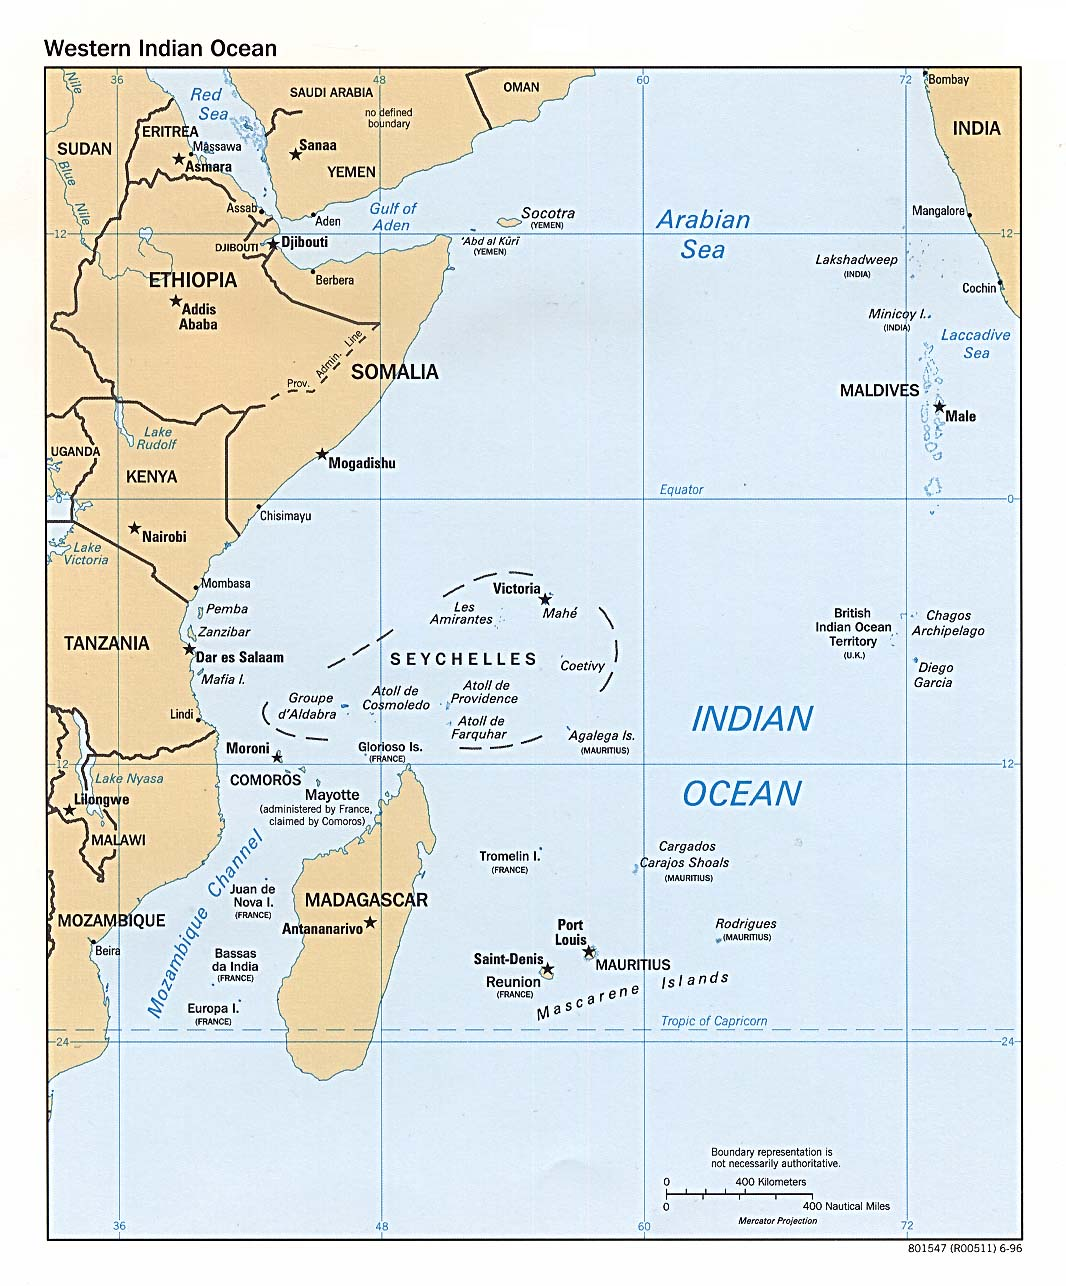 Indian Ocean Map on atlantic ocean, korean peninsula map, arabian sea, comoros map, bay of bengal, world map, pacific ocean, persian gulf, silk road, india map, caspian sea, south china sea, middle east map, equator map, christmas island, ukraine map, south america map, china map, africa map, bay of bengal map, cape of good hope map, caribbean sea, mediterranean sea, iran map, pacific map, arctic ocean, australia map, black sea, south asia, java map, latin america map, persian gulf map, arabian sea map, southern ocean, world ocean, asia map, red sea,